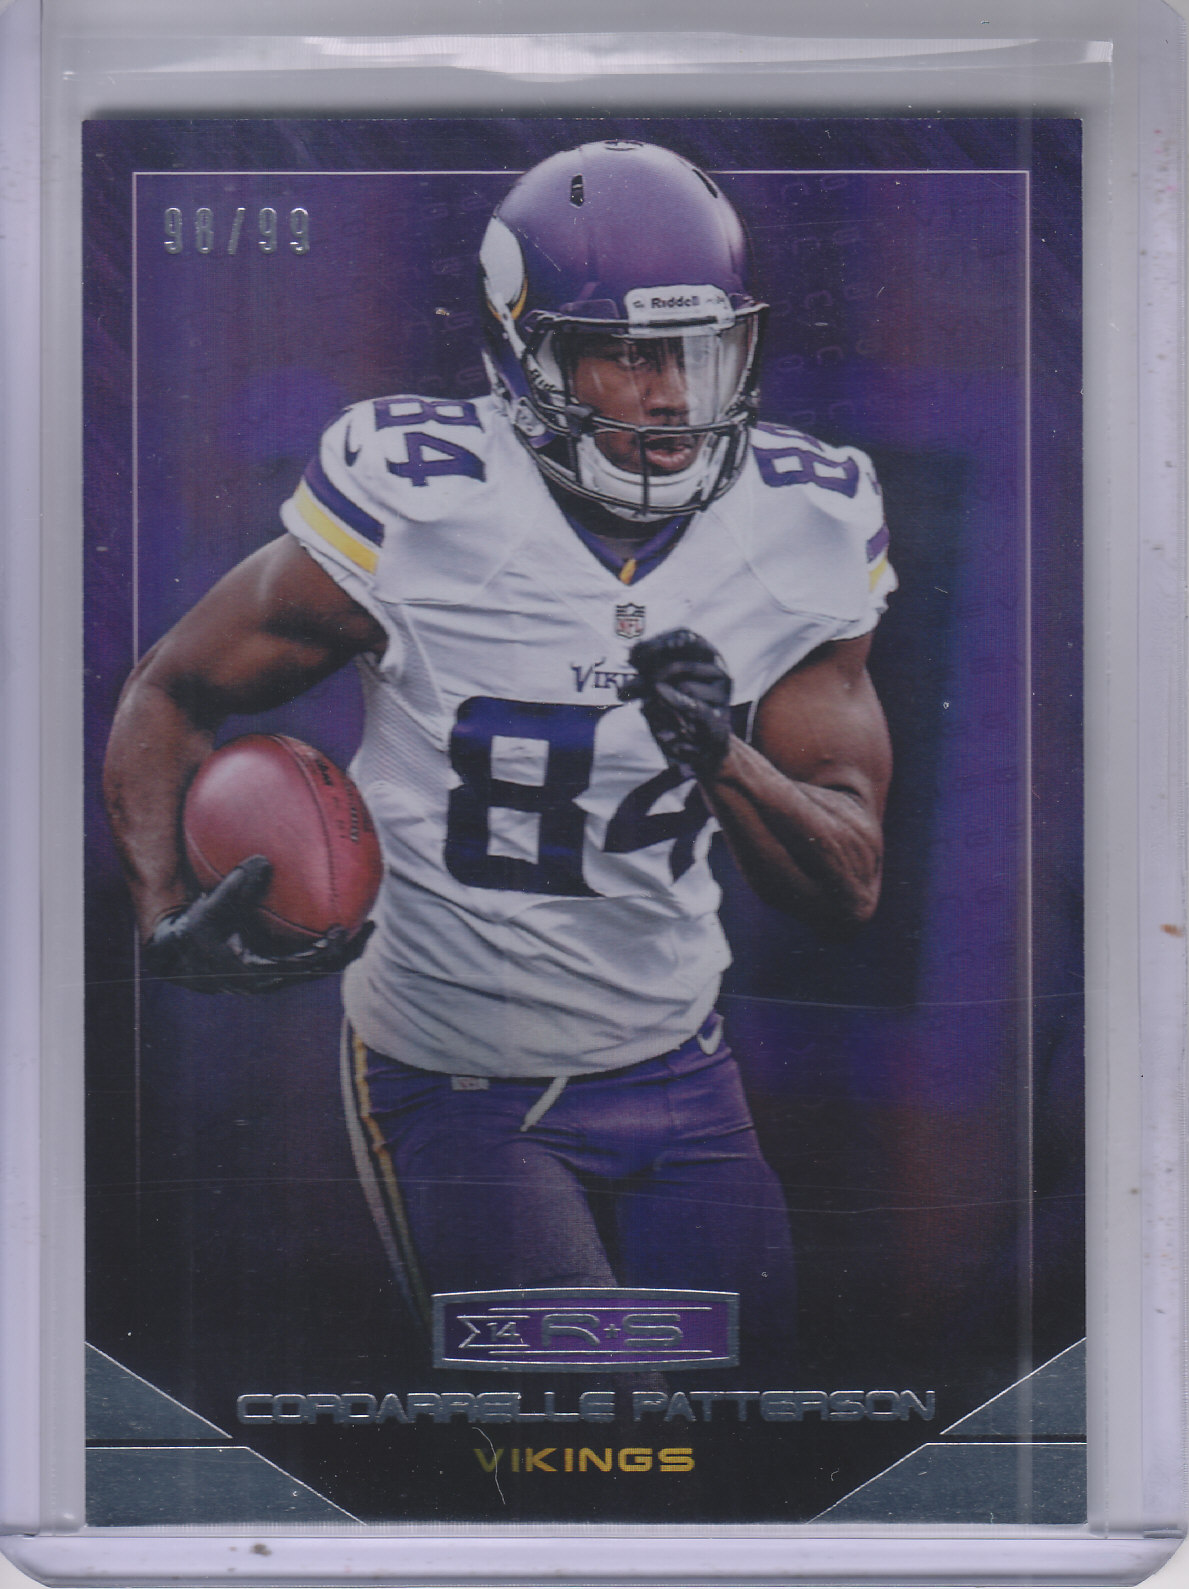 2014 Rookies and Stars Longevity Holofoil Parallel #79 Cordarrelle Patterson